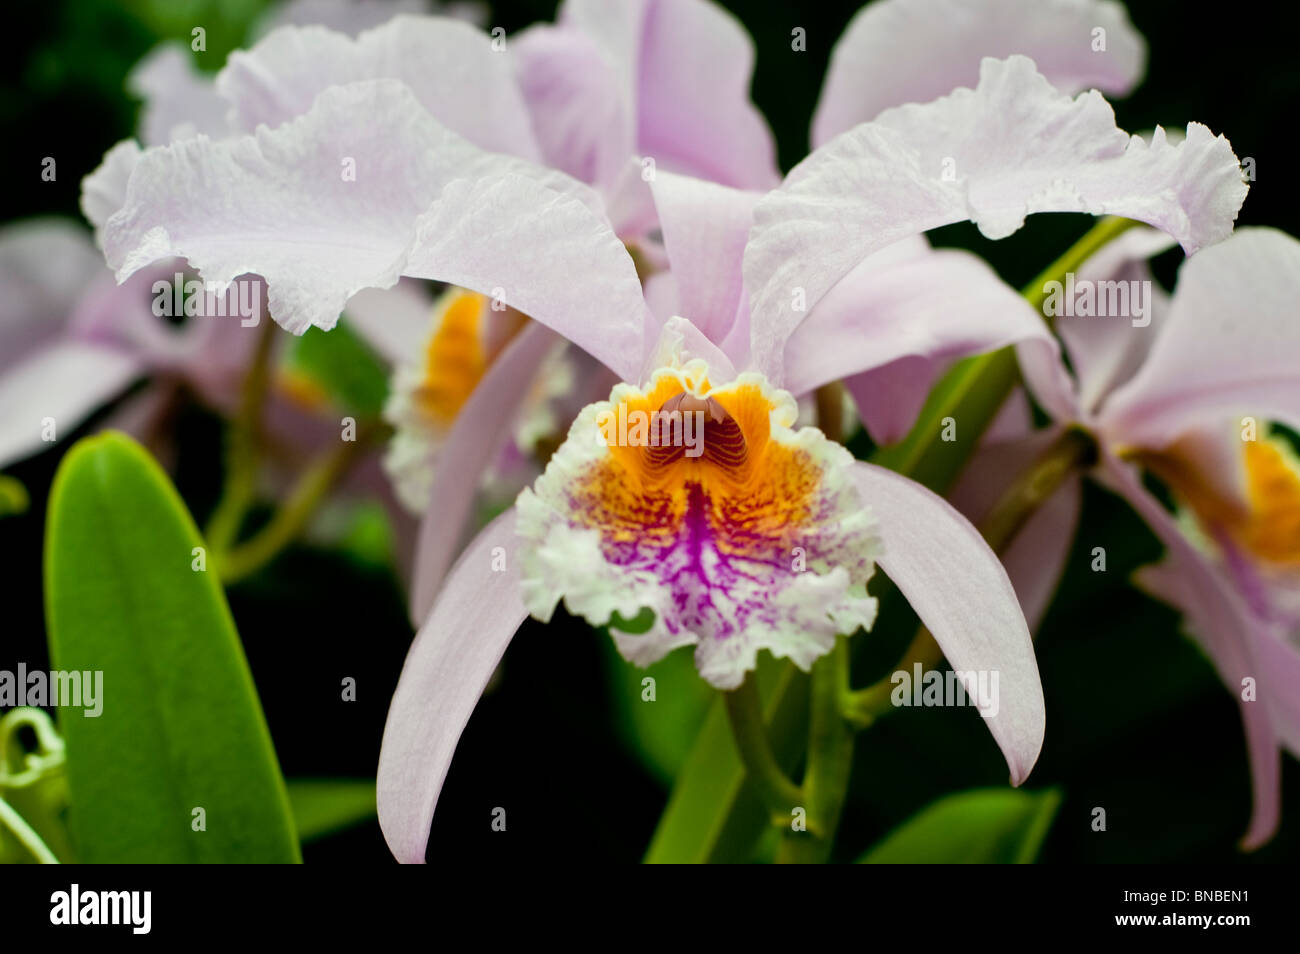 Cattleya Trianae Orchidaceae Colombia Endangered Threatened